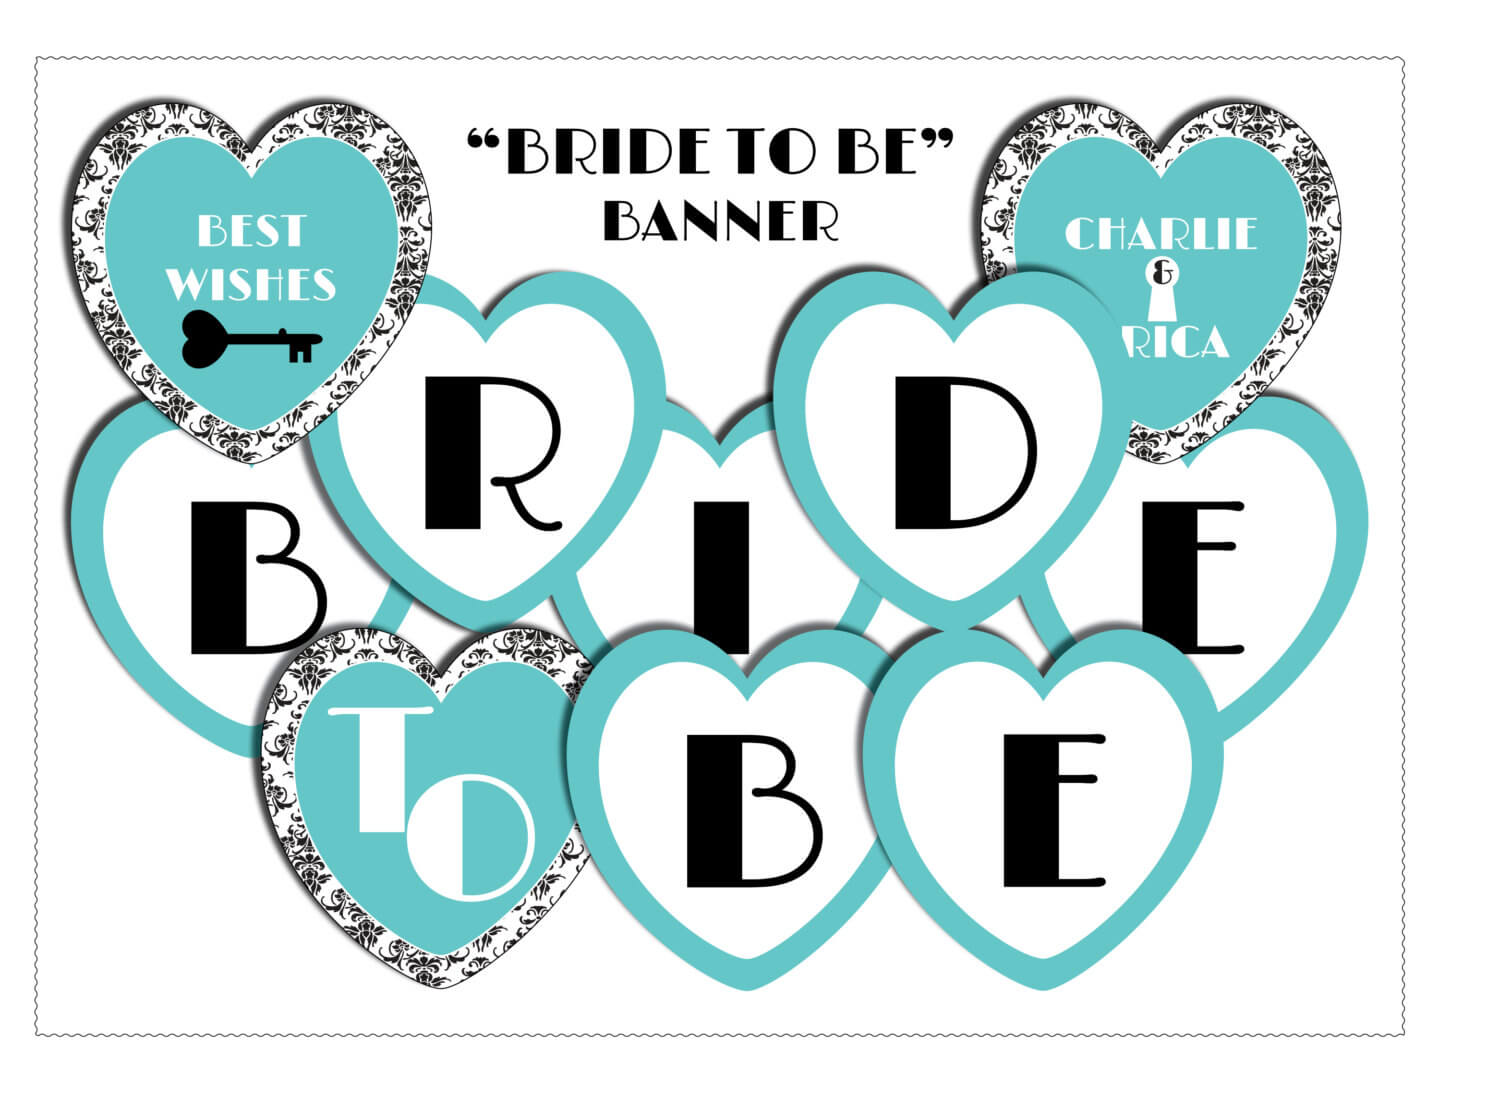 11 Best Photos Of Bride To Be Banner Template - Diy Bridal For Free Bridal Shower Banner Template